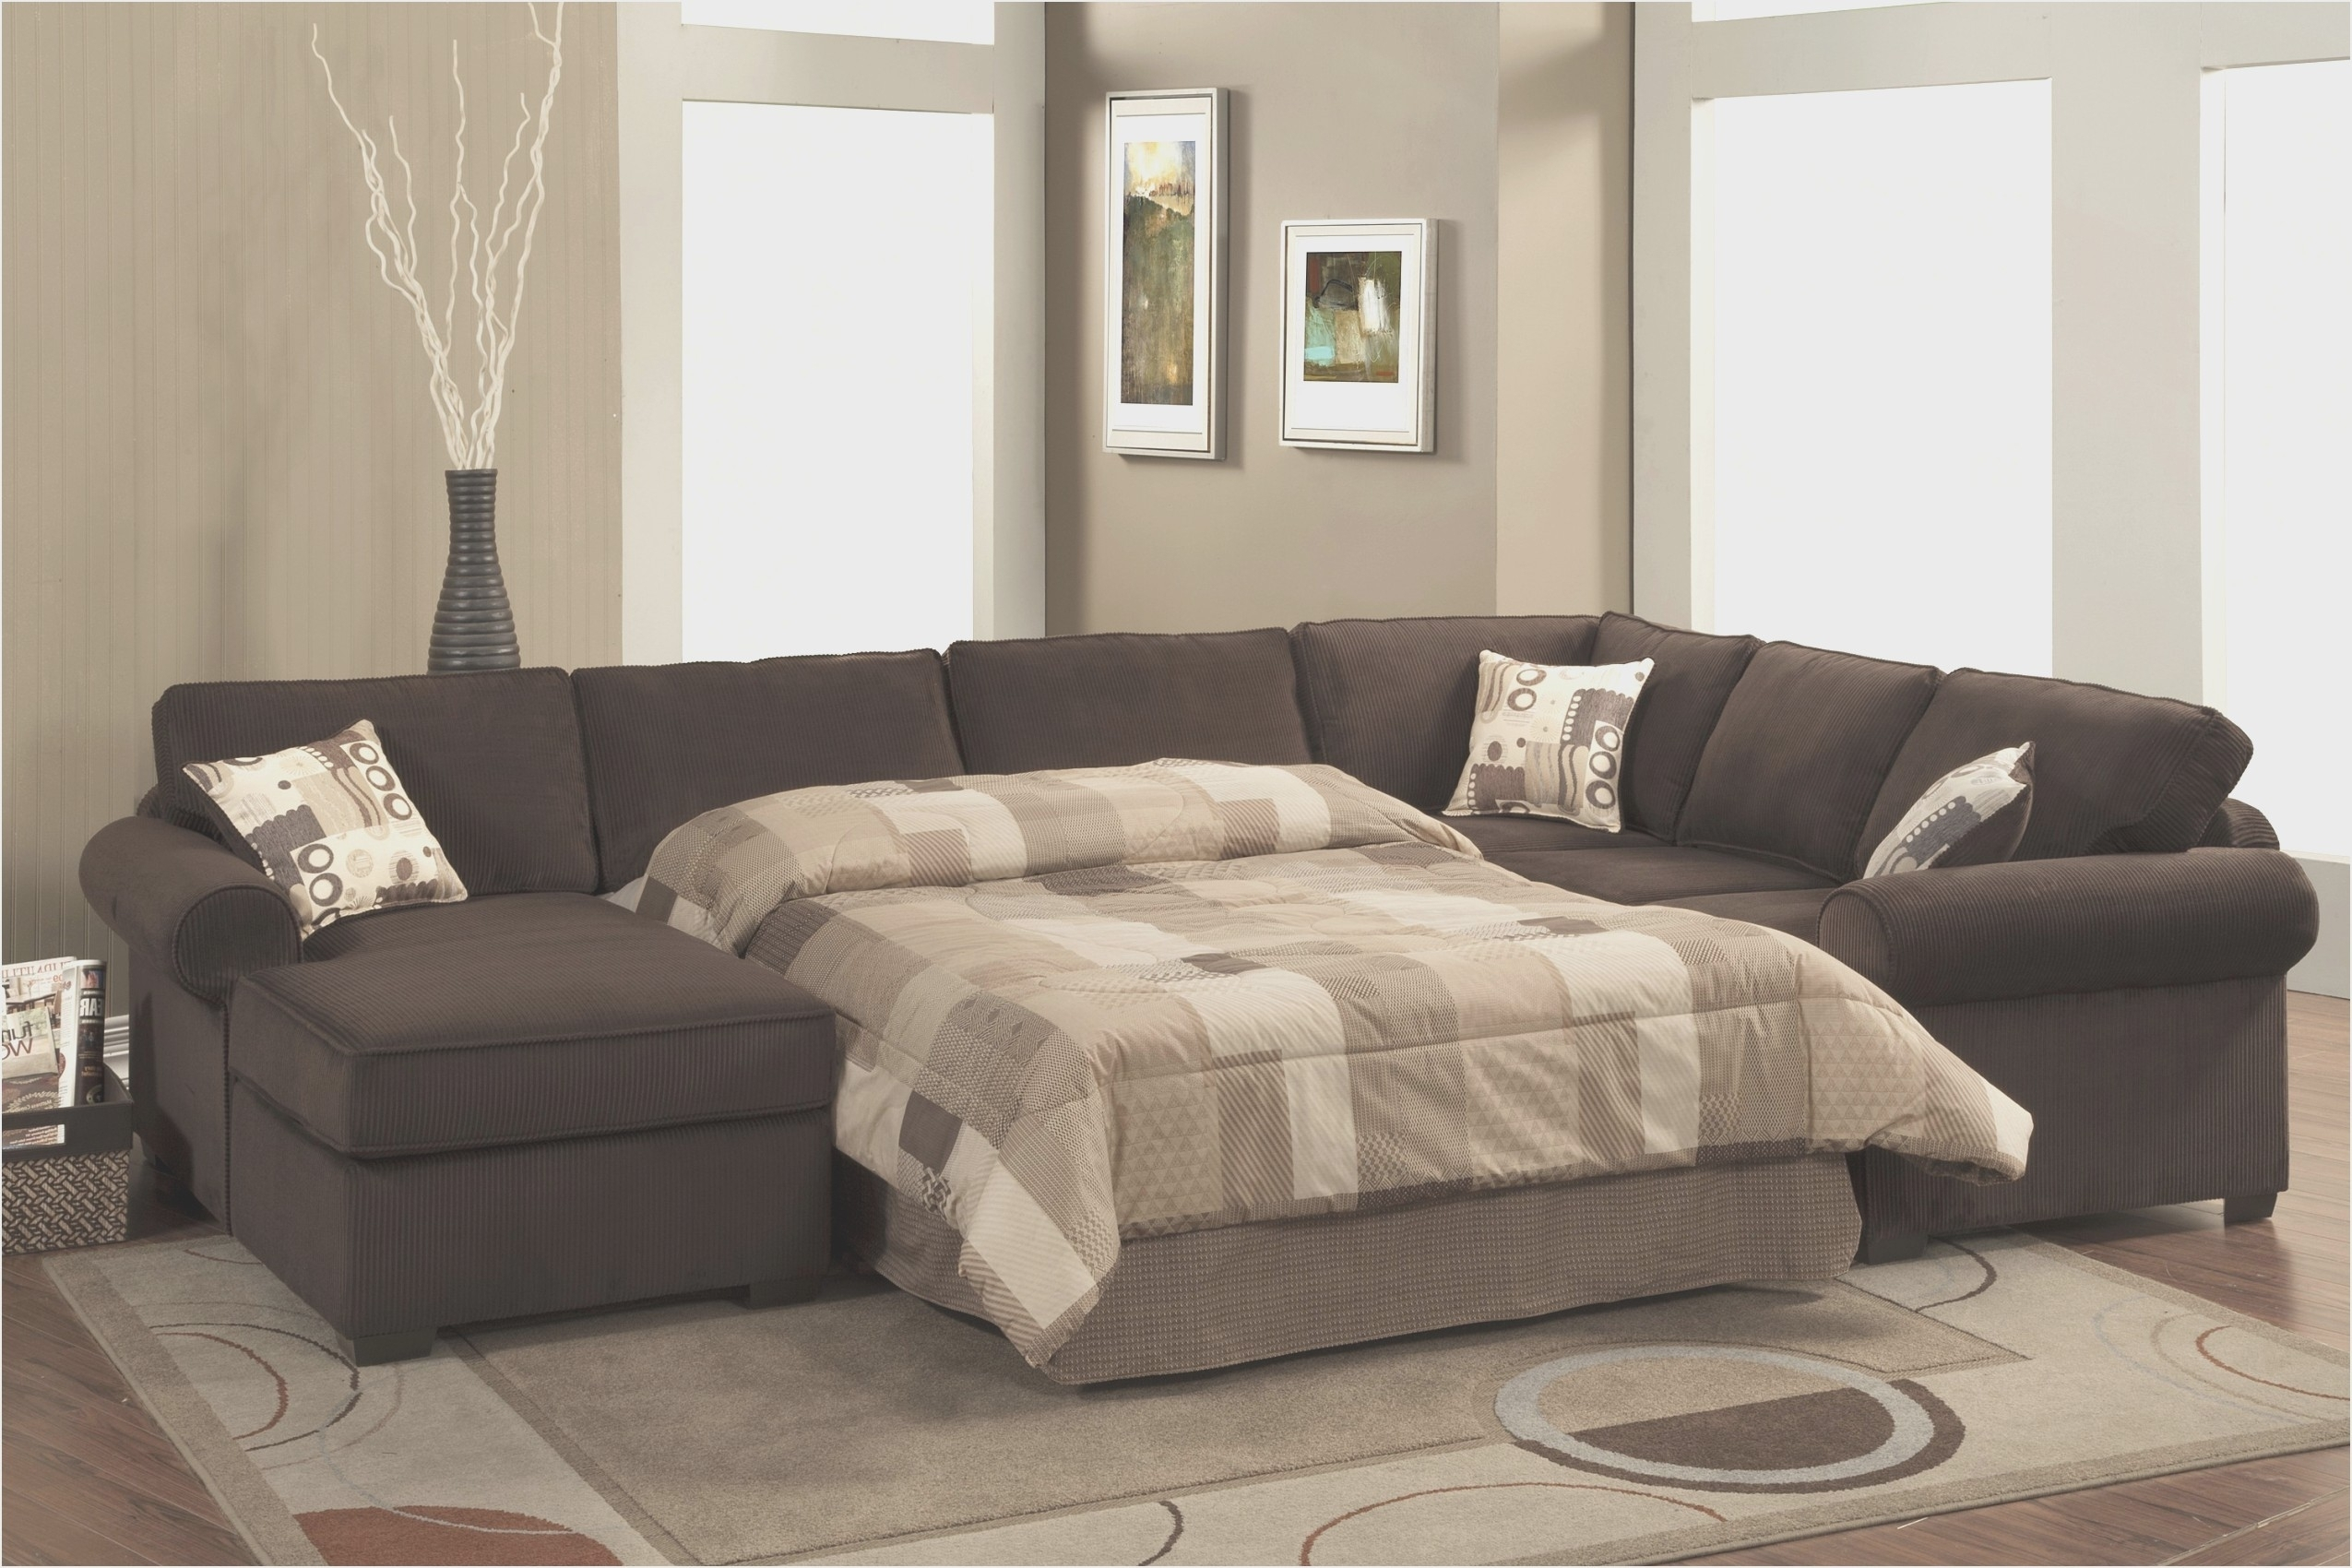 Sofas For Bedroom | Home Decor & Furnitures Throughout Bedroom Sofas (View 4 of 10)